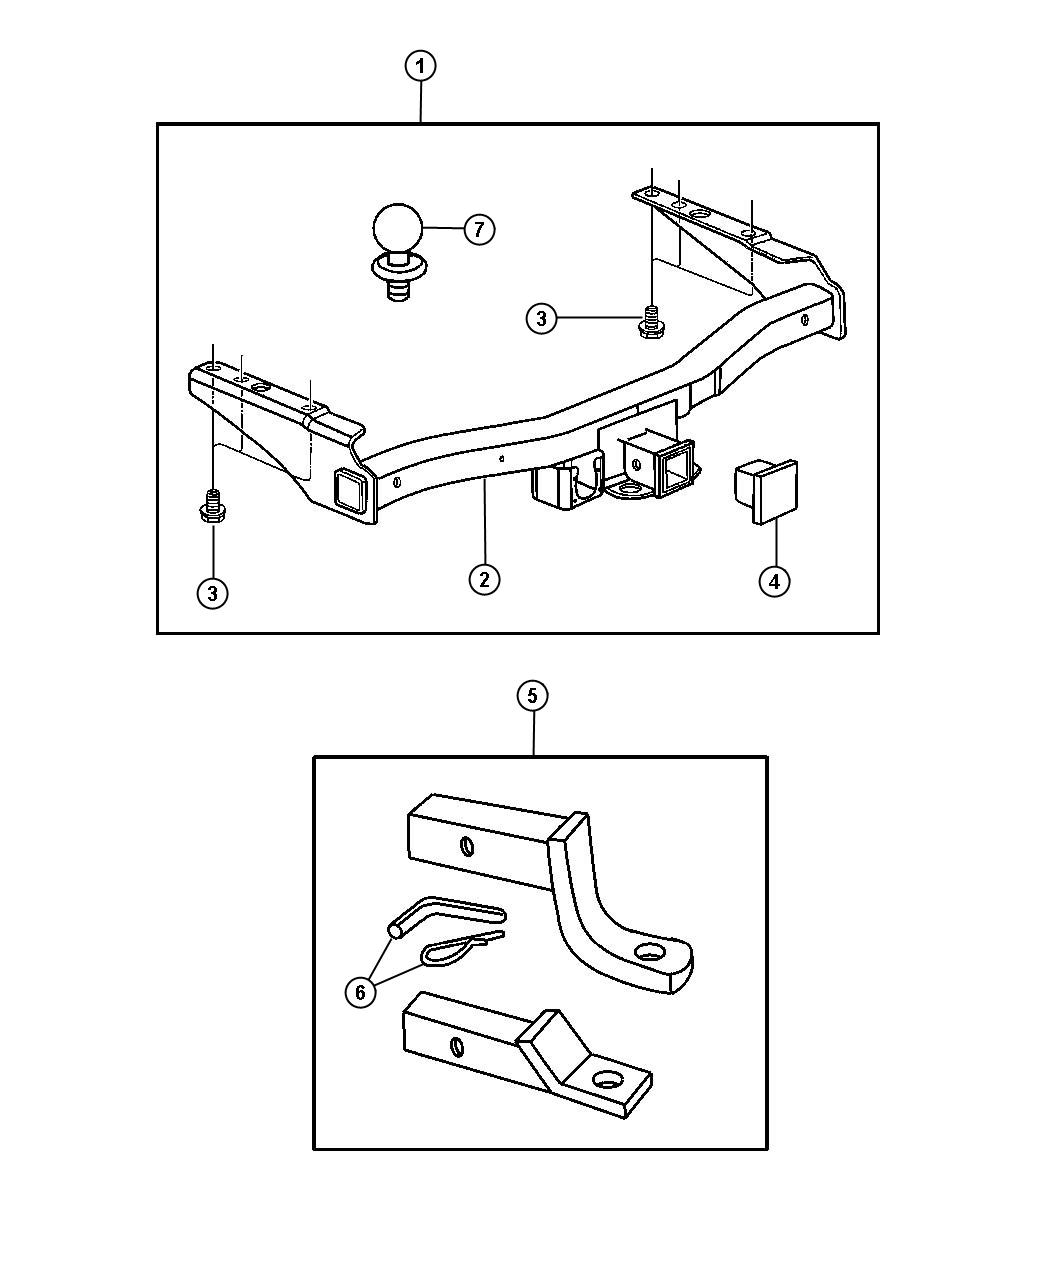 Receiver and Adapter Kits - Trailer Tow. Diagram